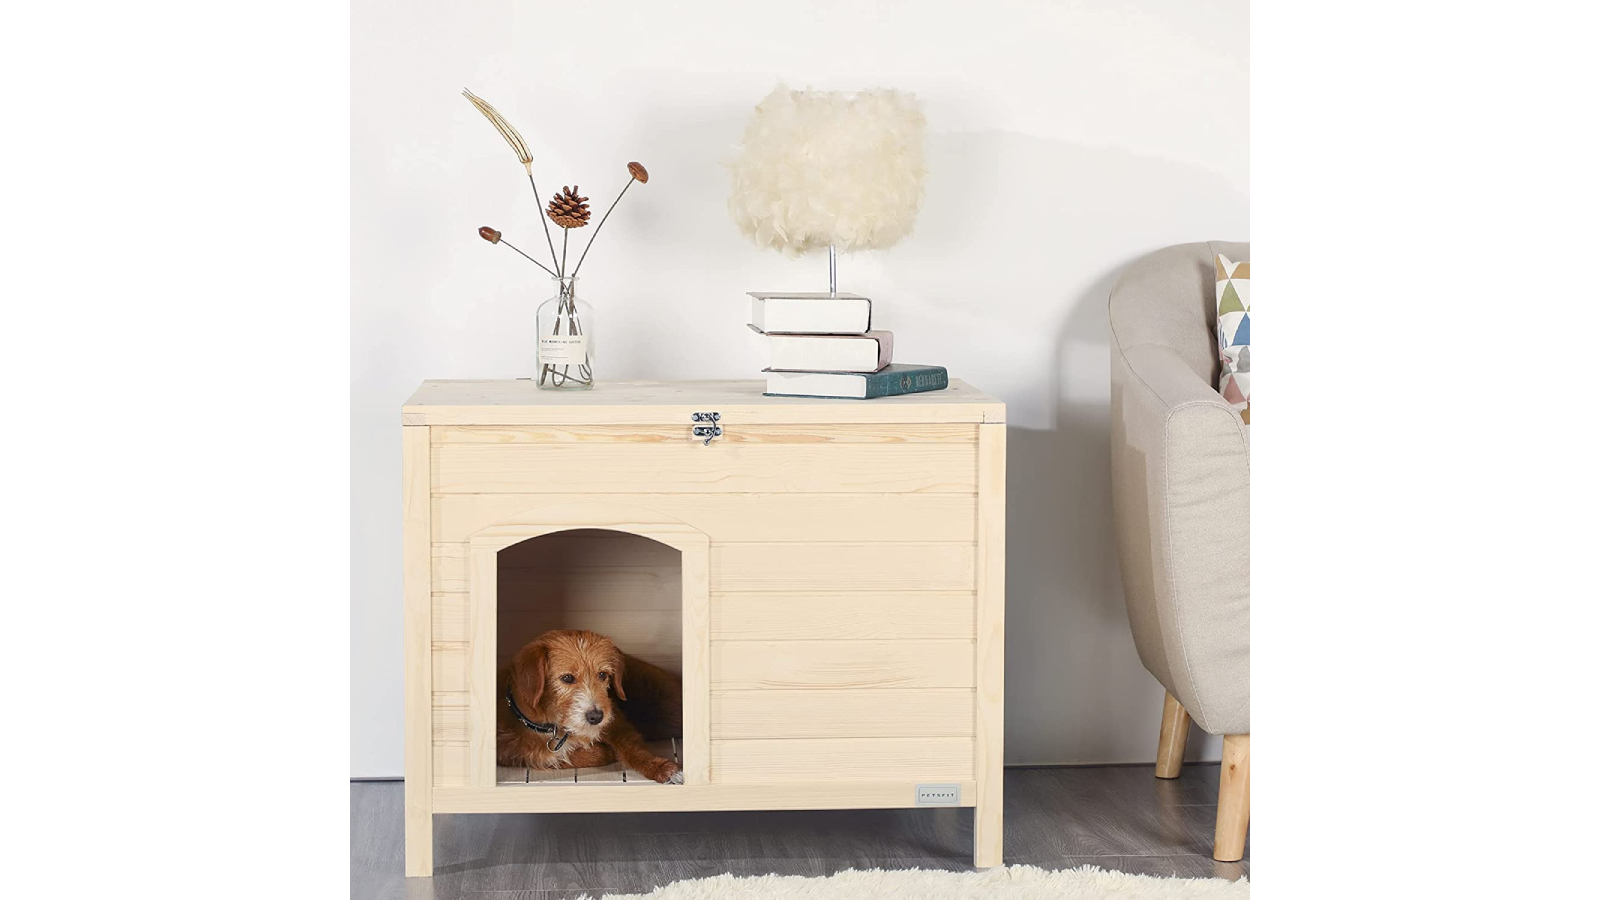 White wooden indoor doghouse with dog peeking out the door.